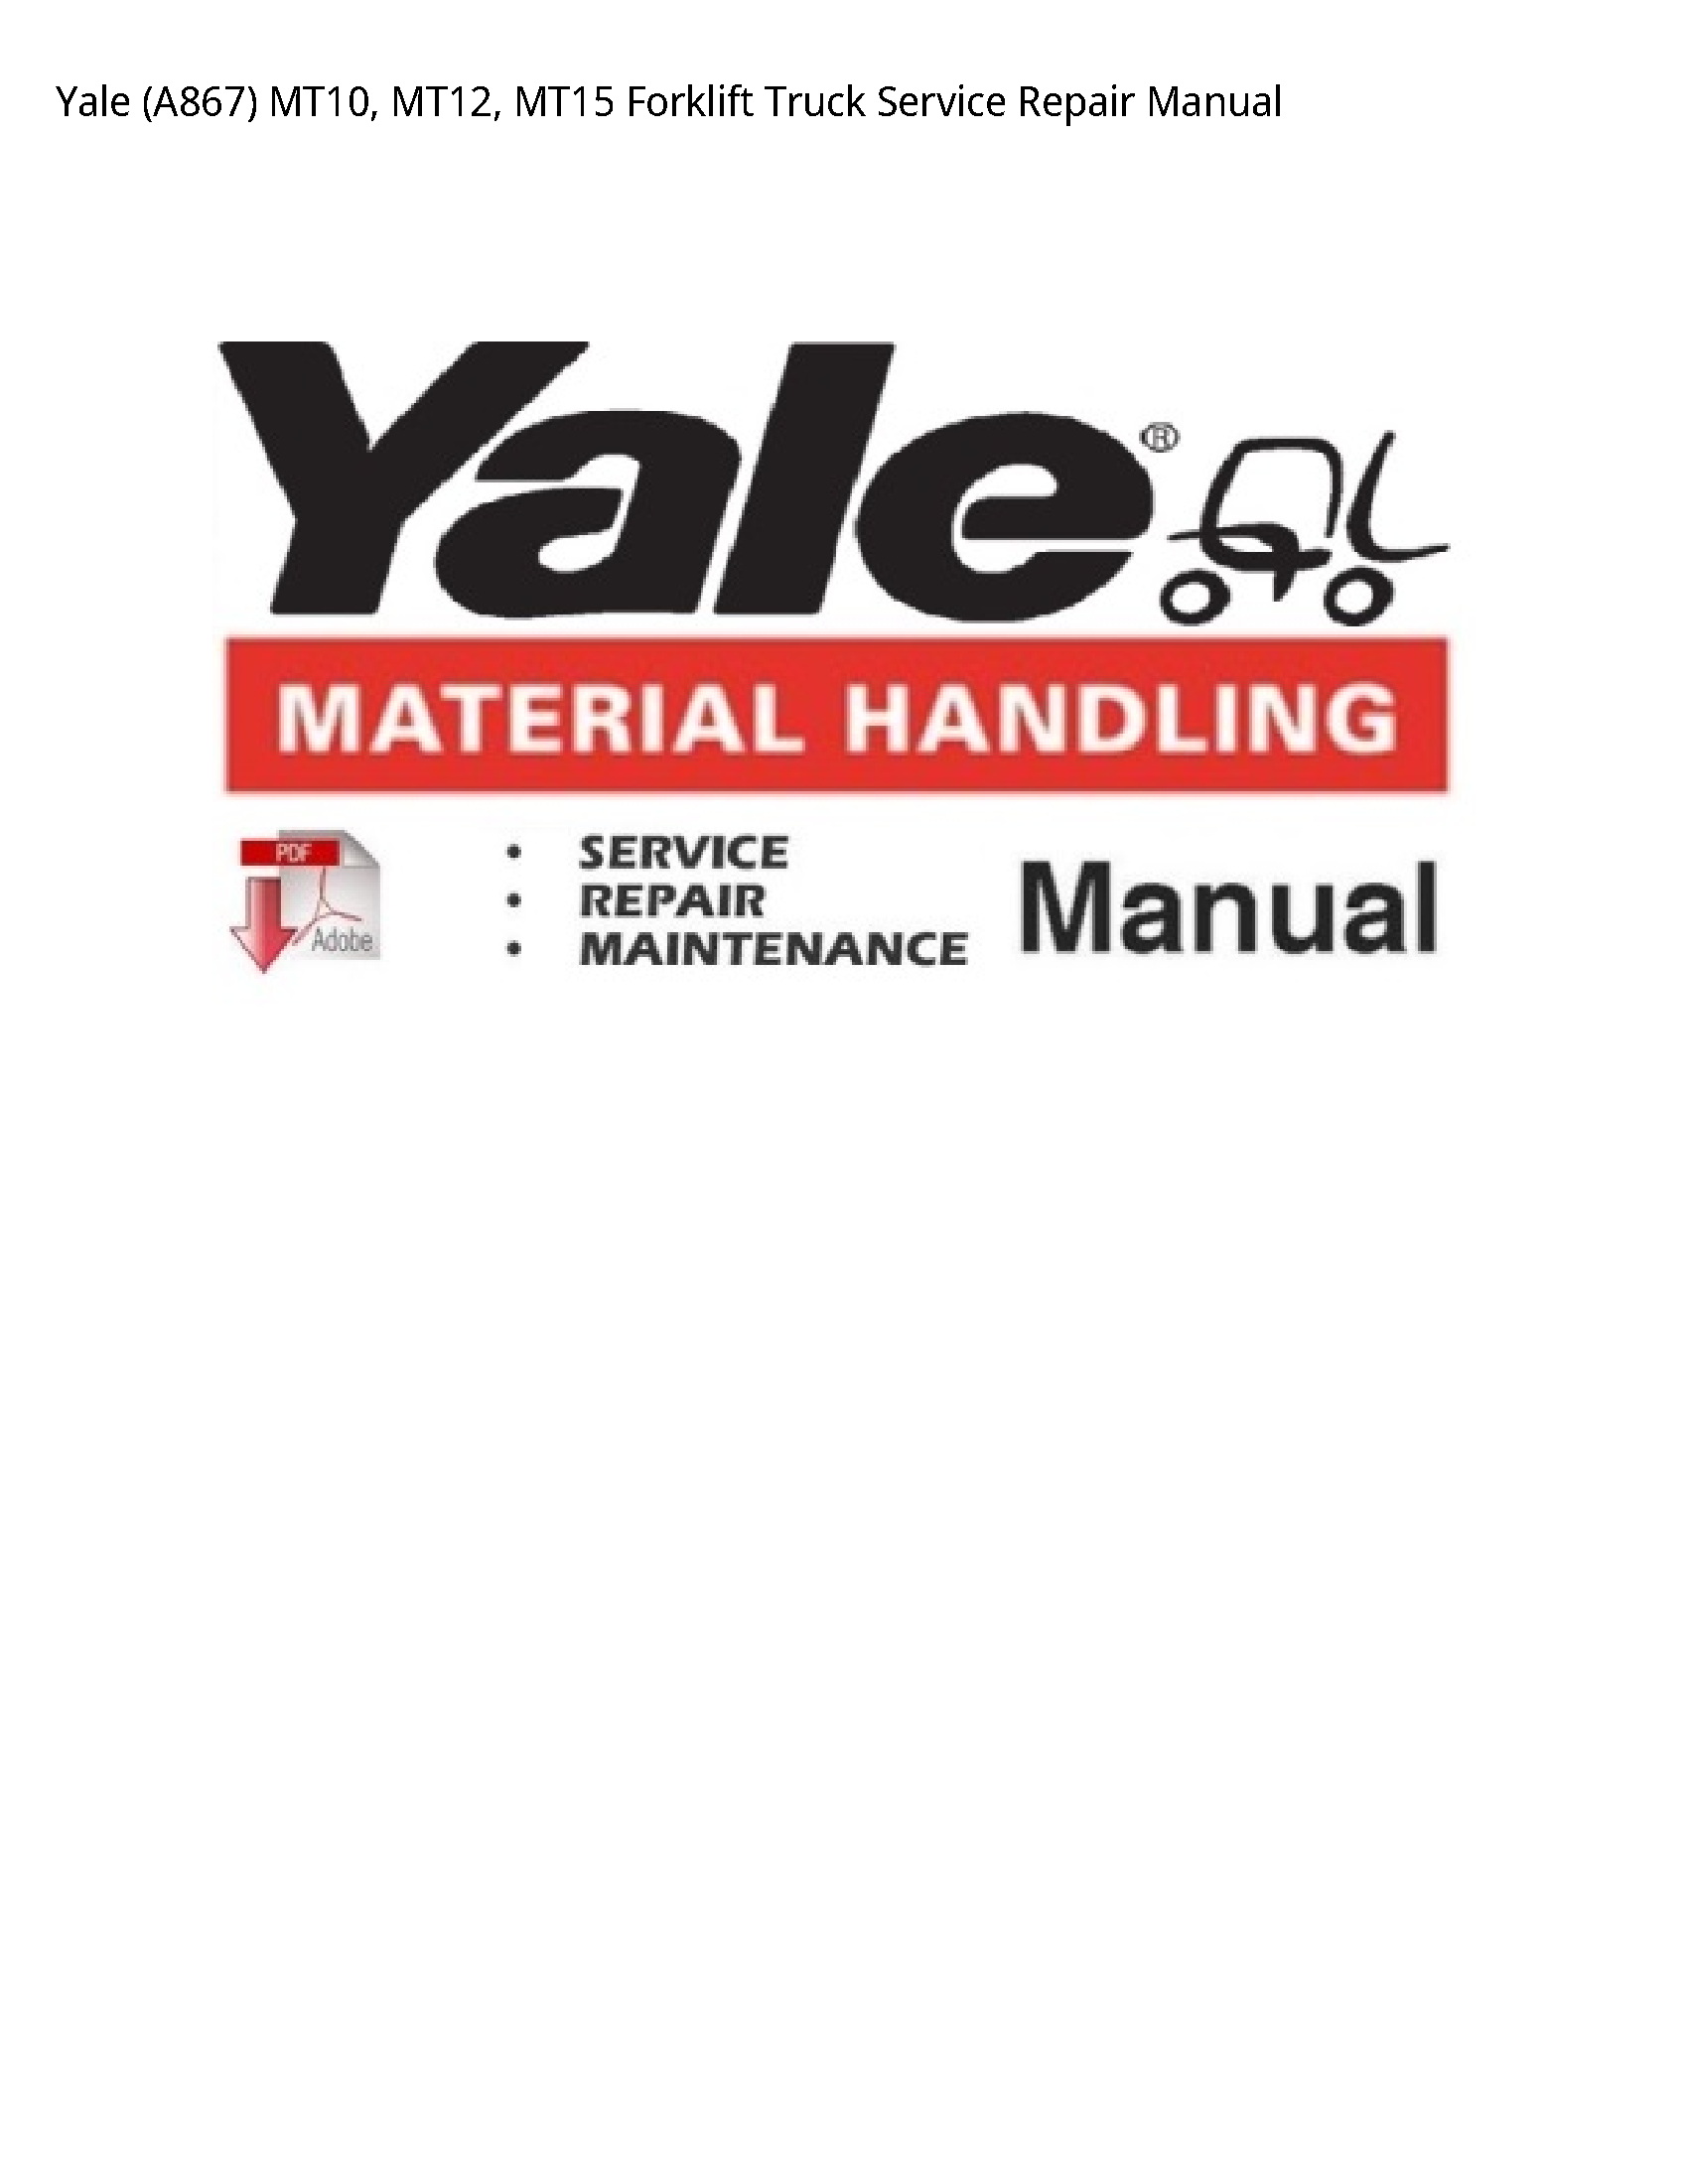 Yale (A867) Forklift Truck manual